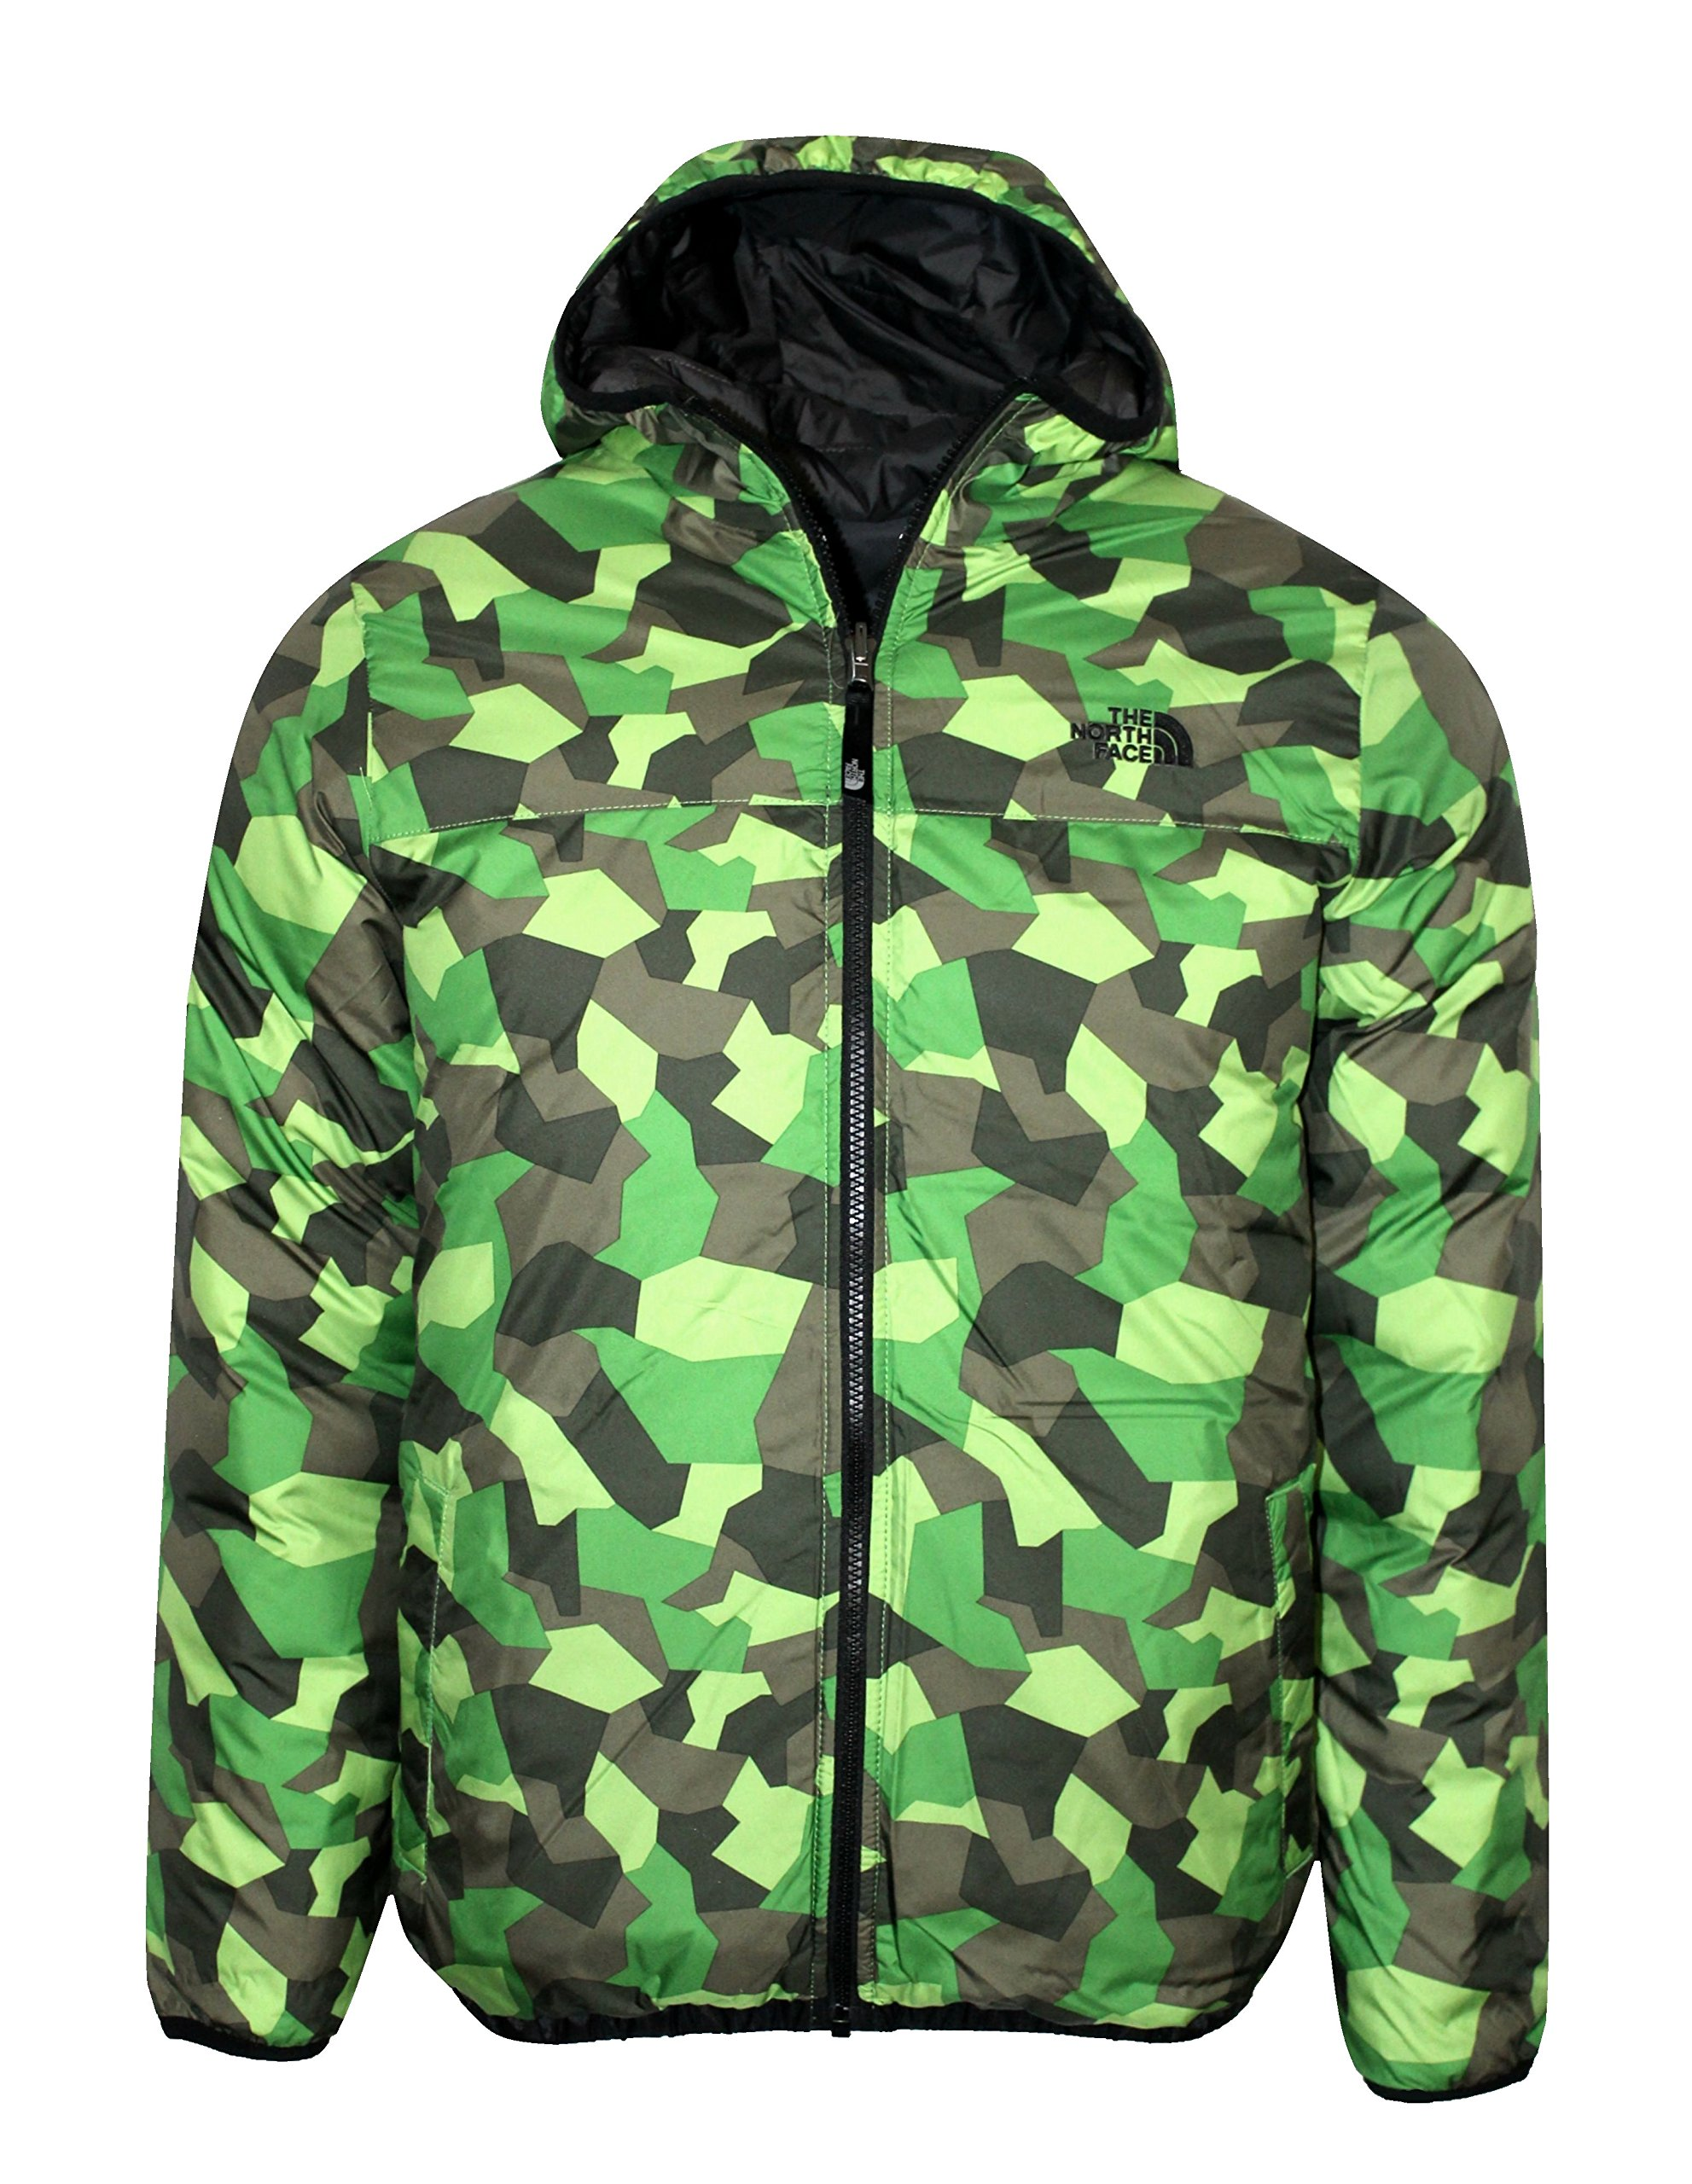 THE NORTH FACE youth boys REESE DOWN REVERSIBLE hooded JACKET (MEDIUM) by The North Face (Image #2)